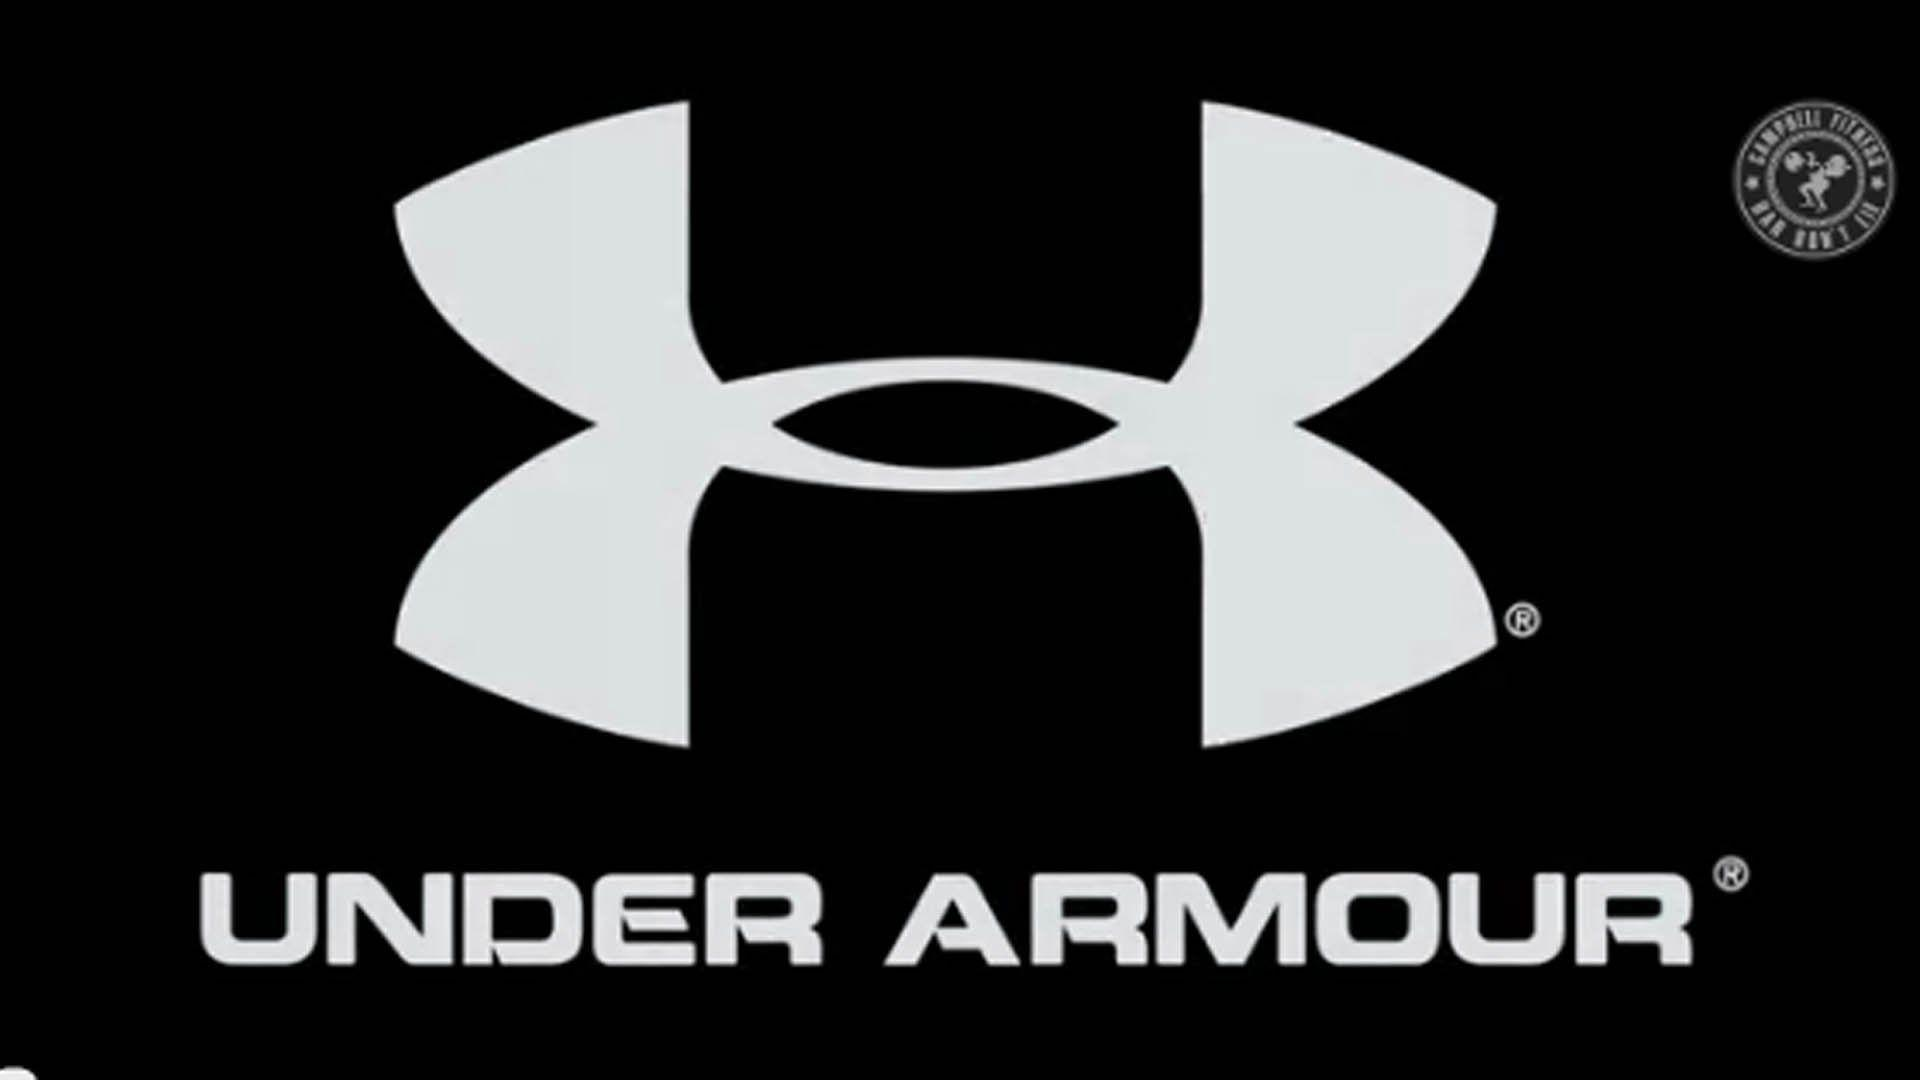 Under Armour Wallpapers HD | HD Wallpapers, Backgrounds, Images ...